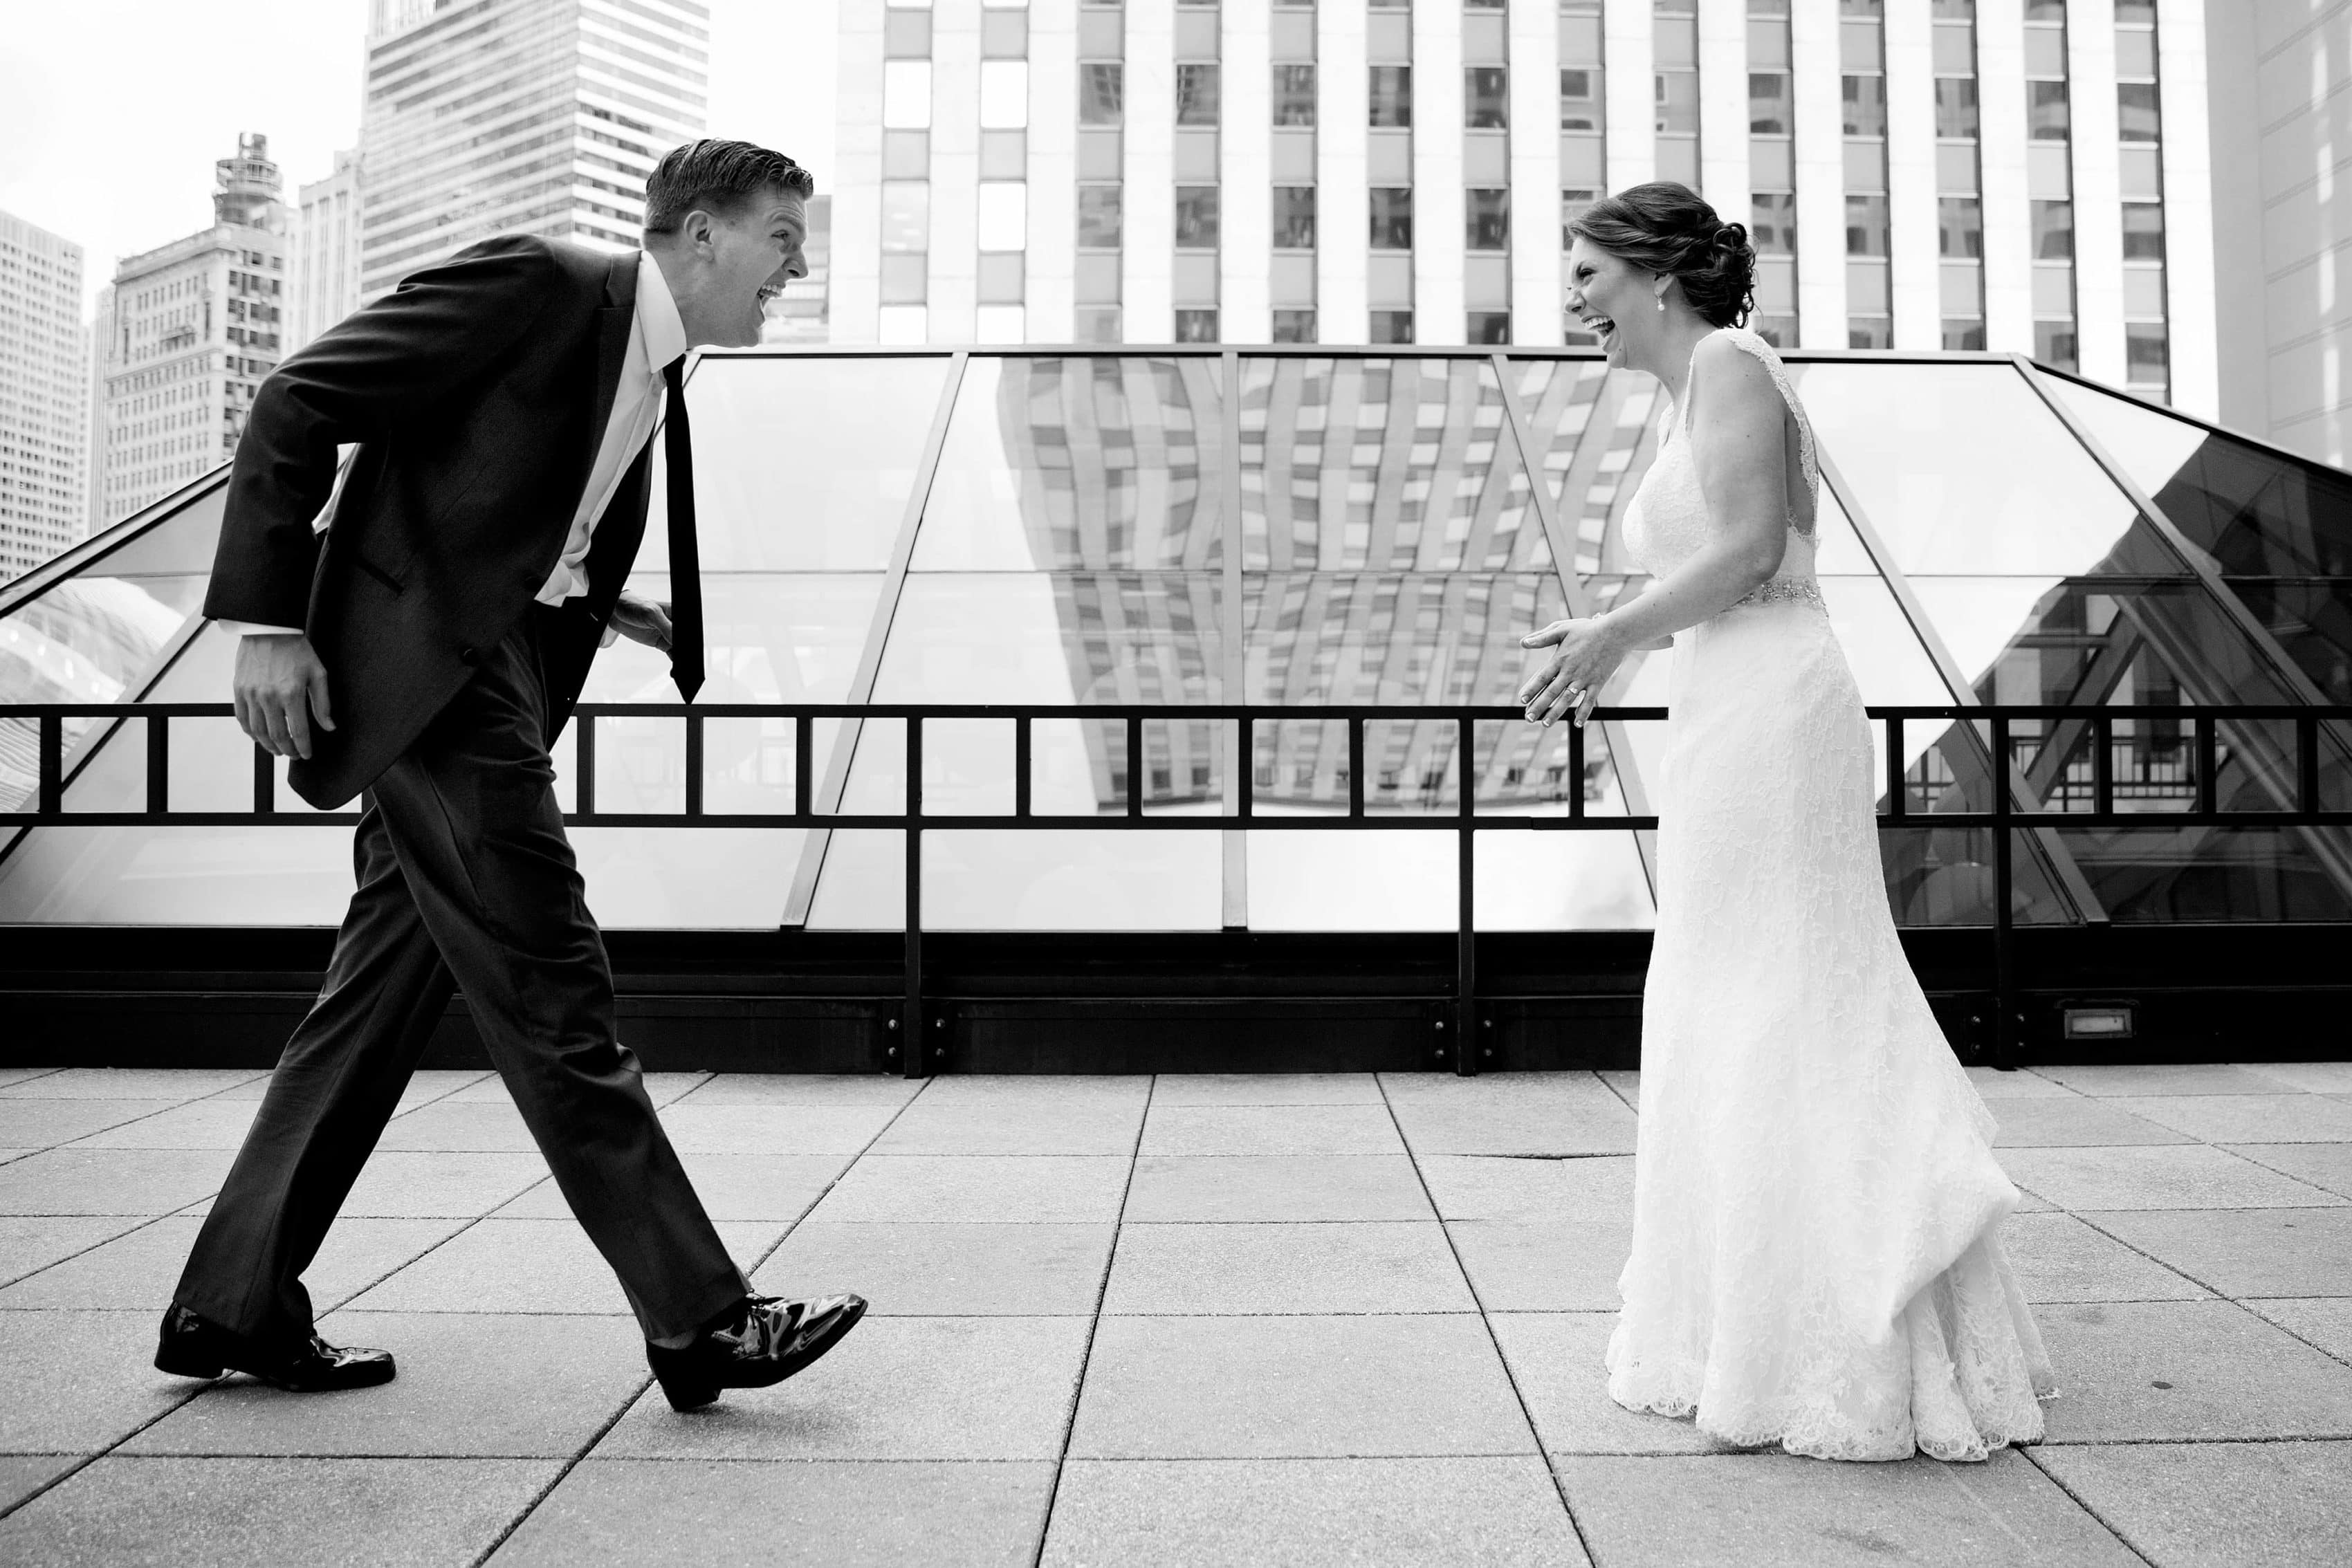 The bride and groom react to seeing each other during their first look before their wedding at the Ravenswood Billboard Factory in Chicago